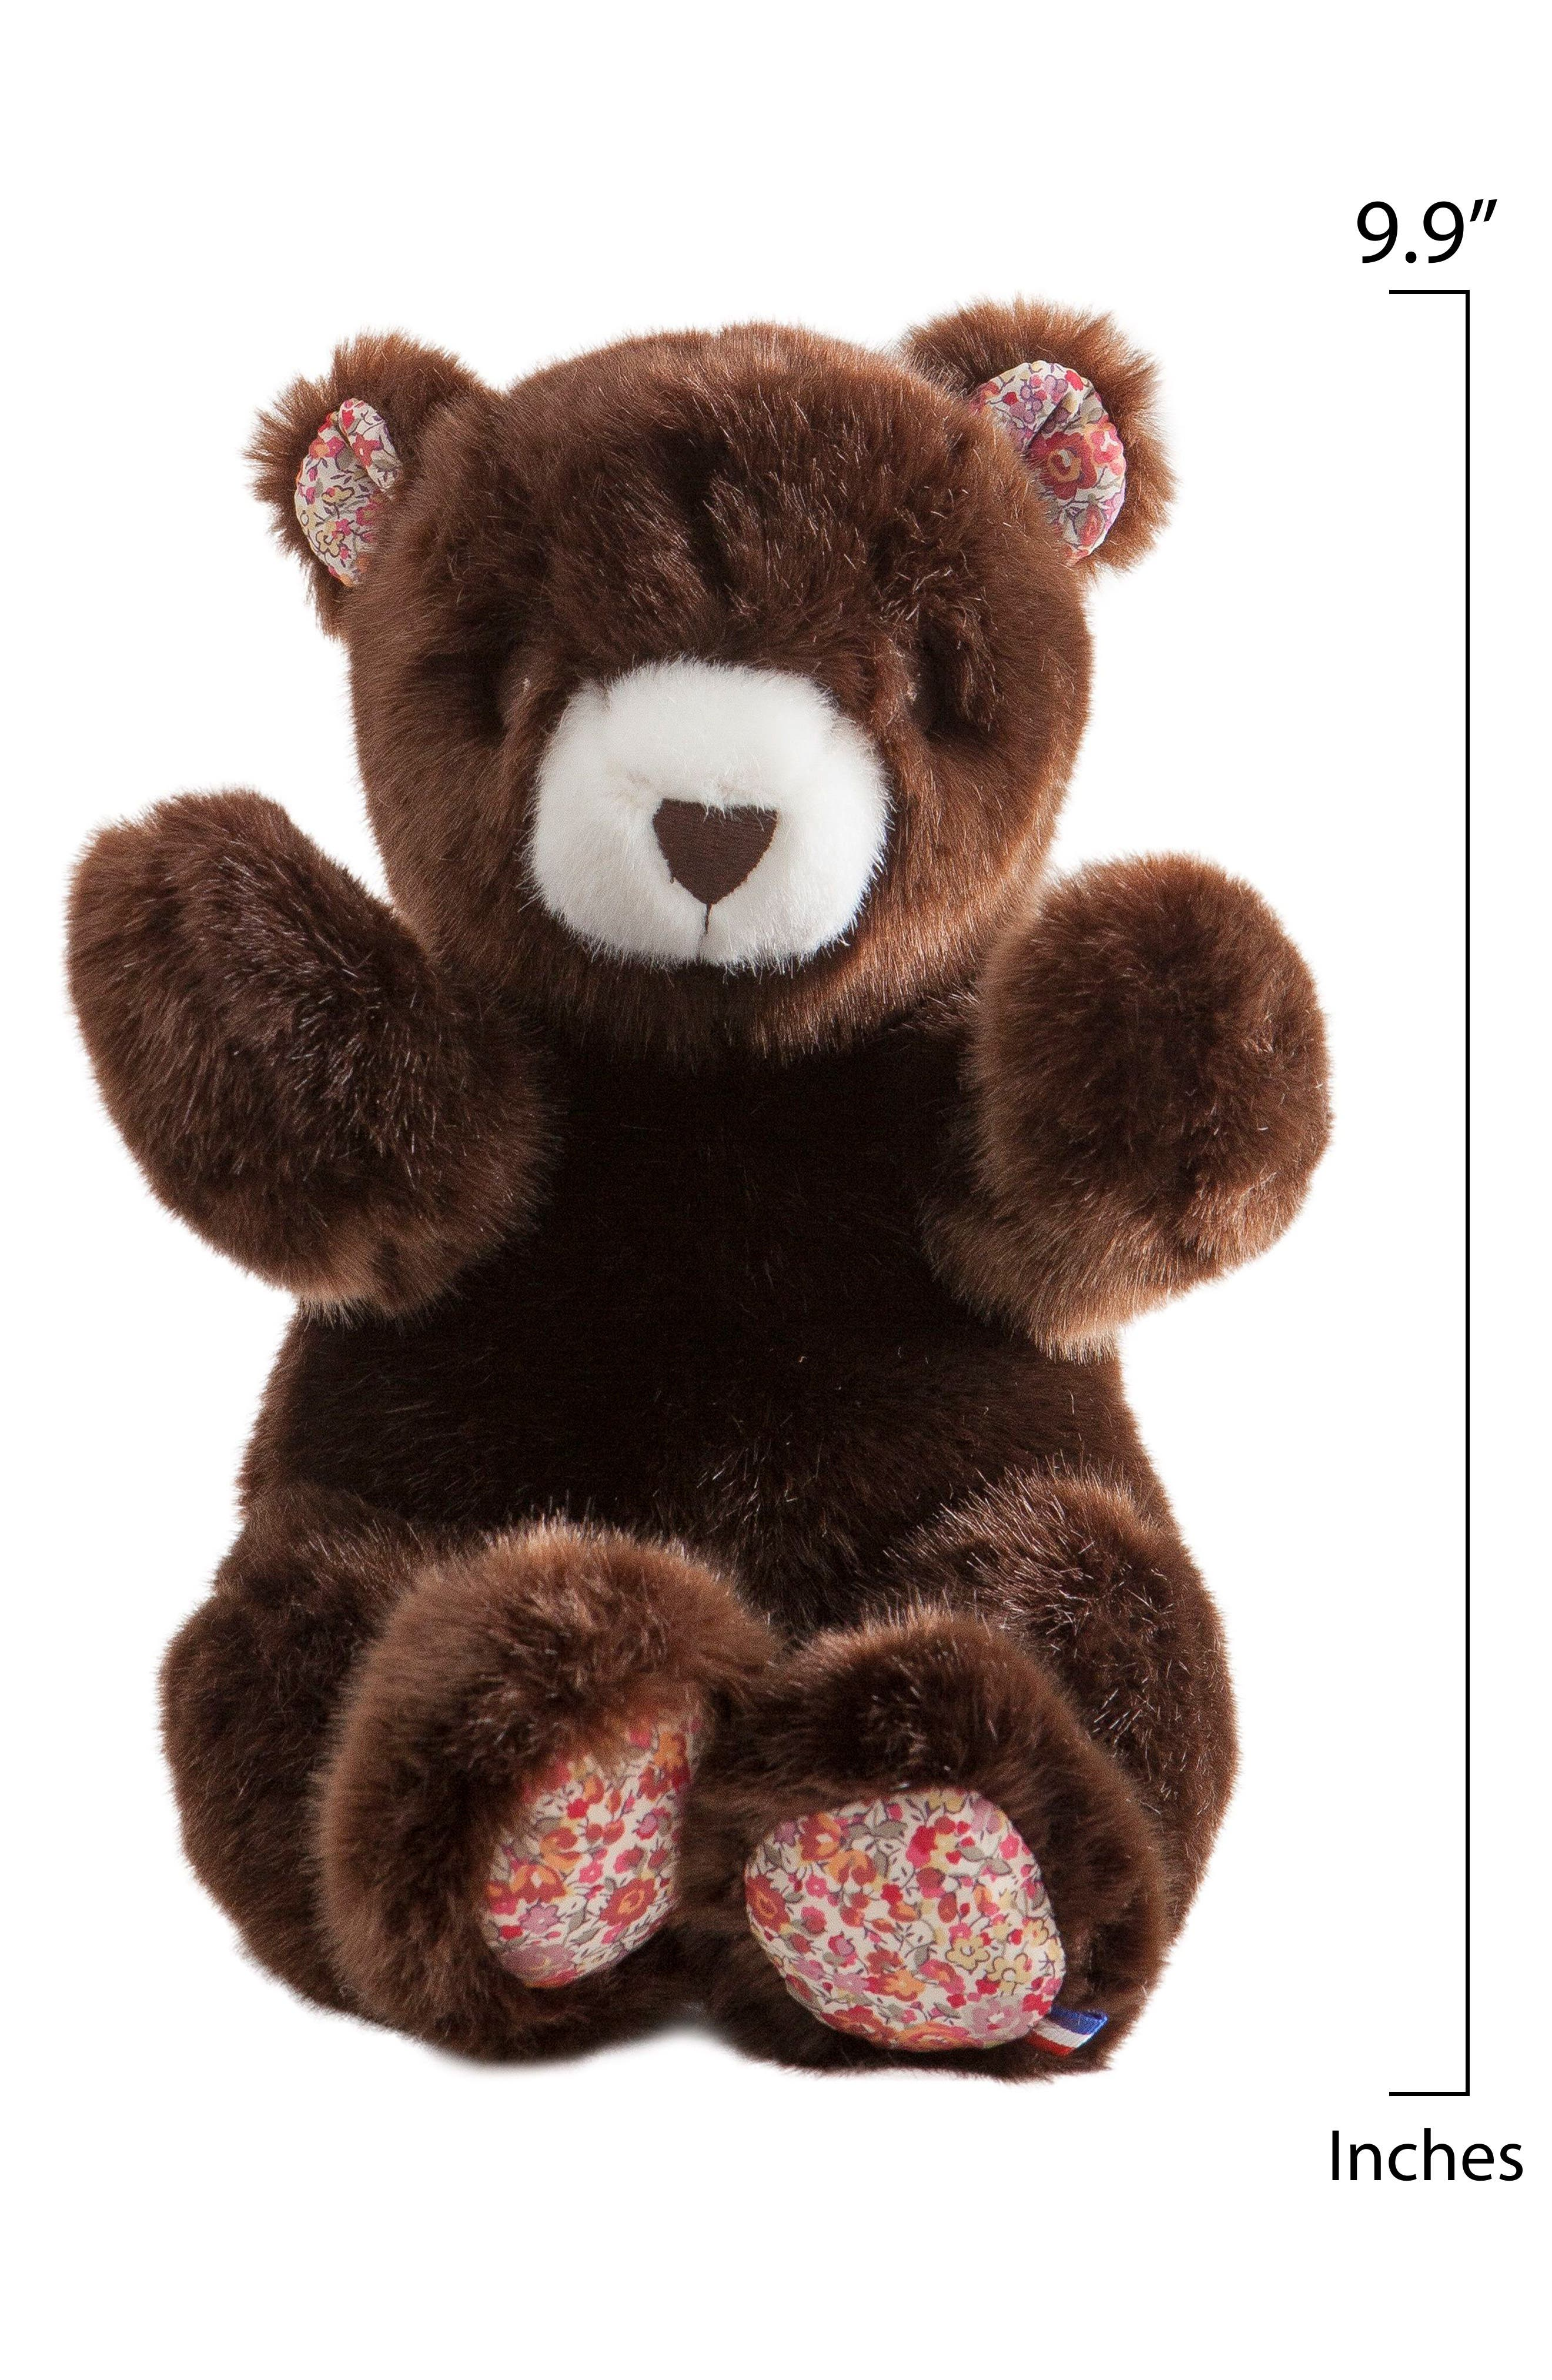 x Liberty of London Robert the Bear Stuffed Animal,                             Alternate thumbnail 2, color,                             BROWN